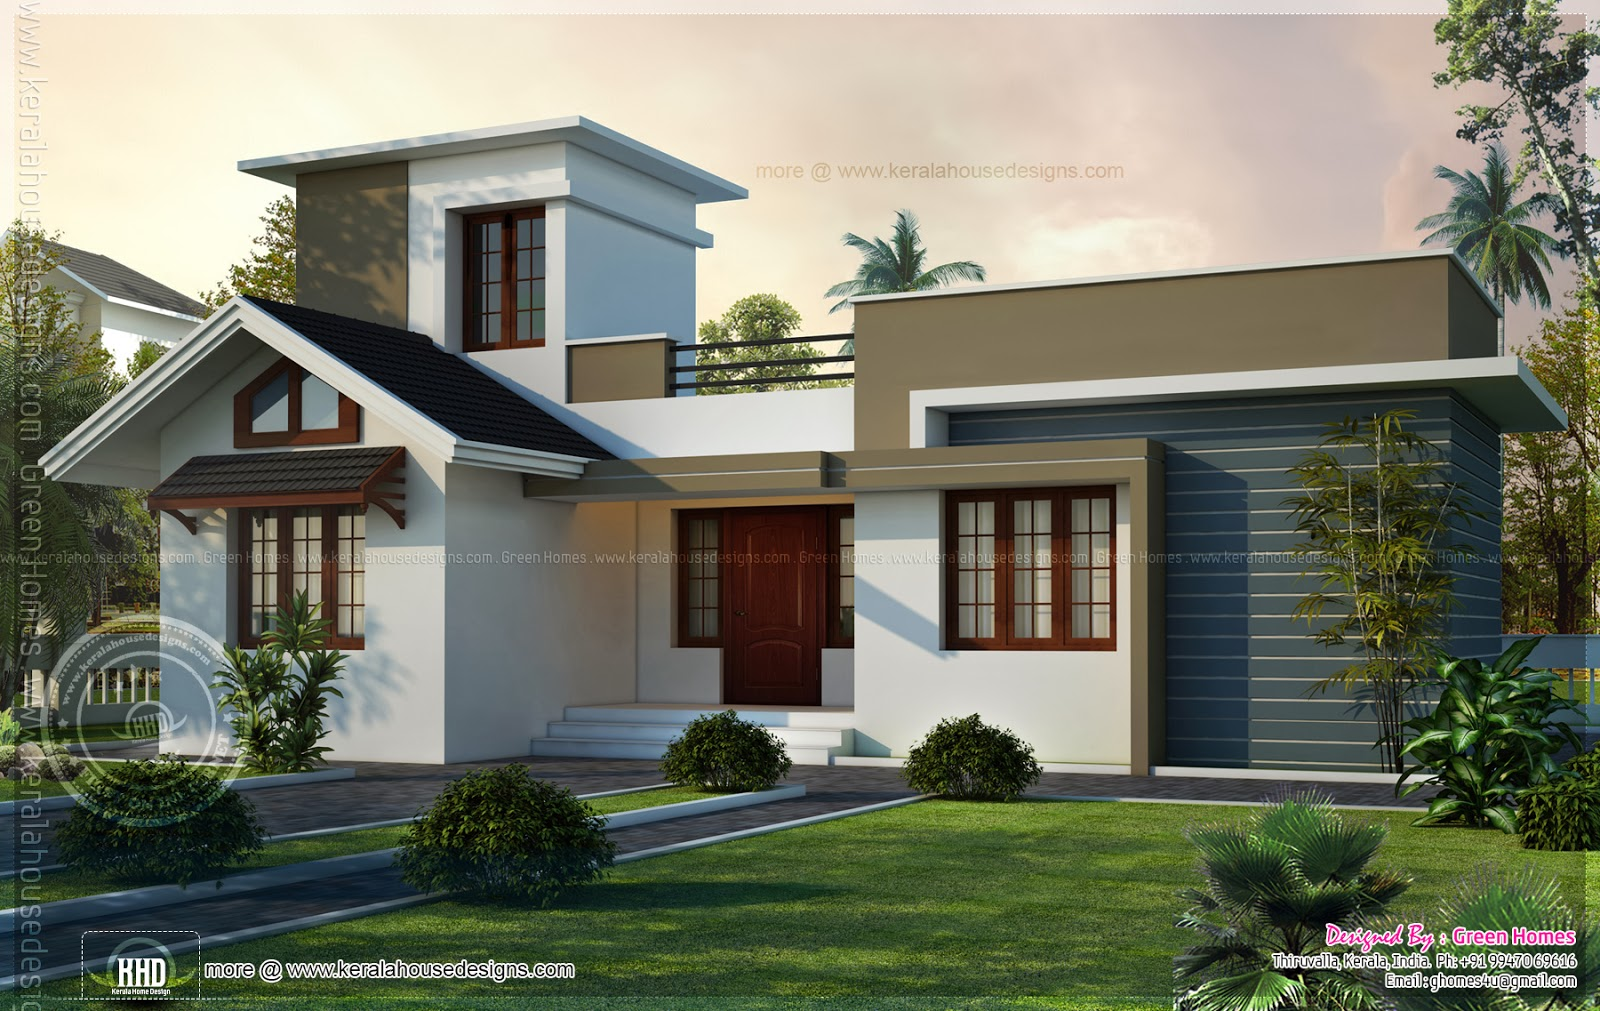 1000 square feet small house design kerala home design for Small house design plans in india image